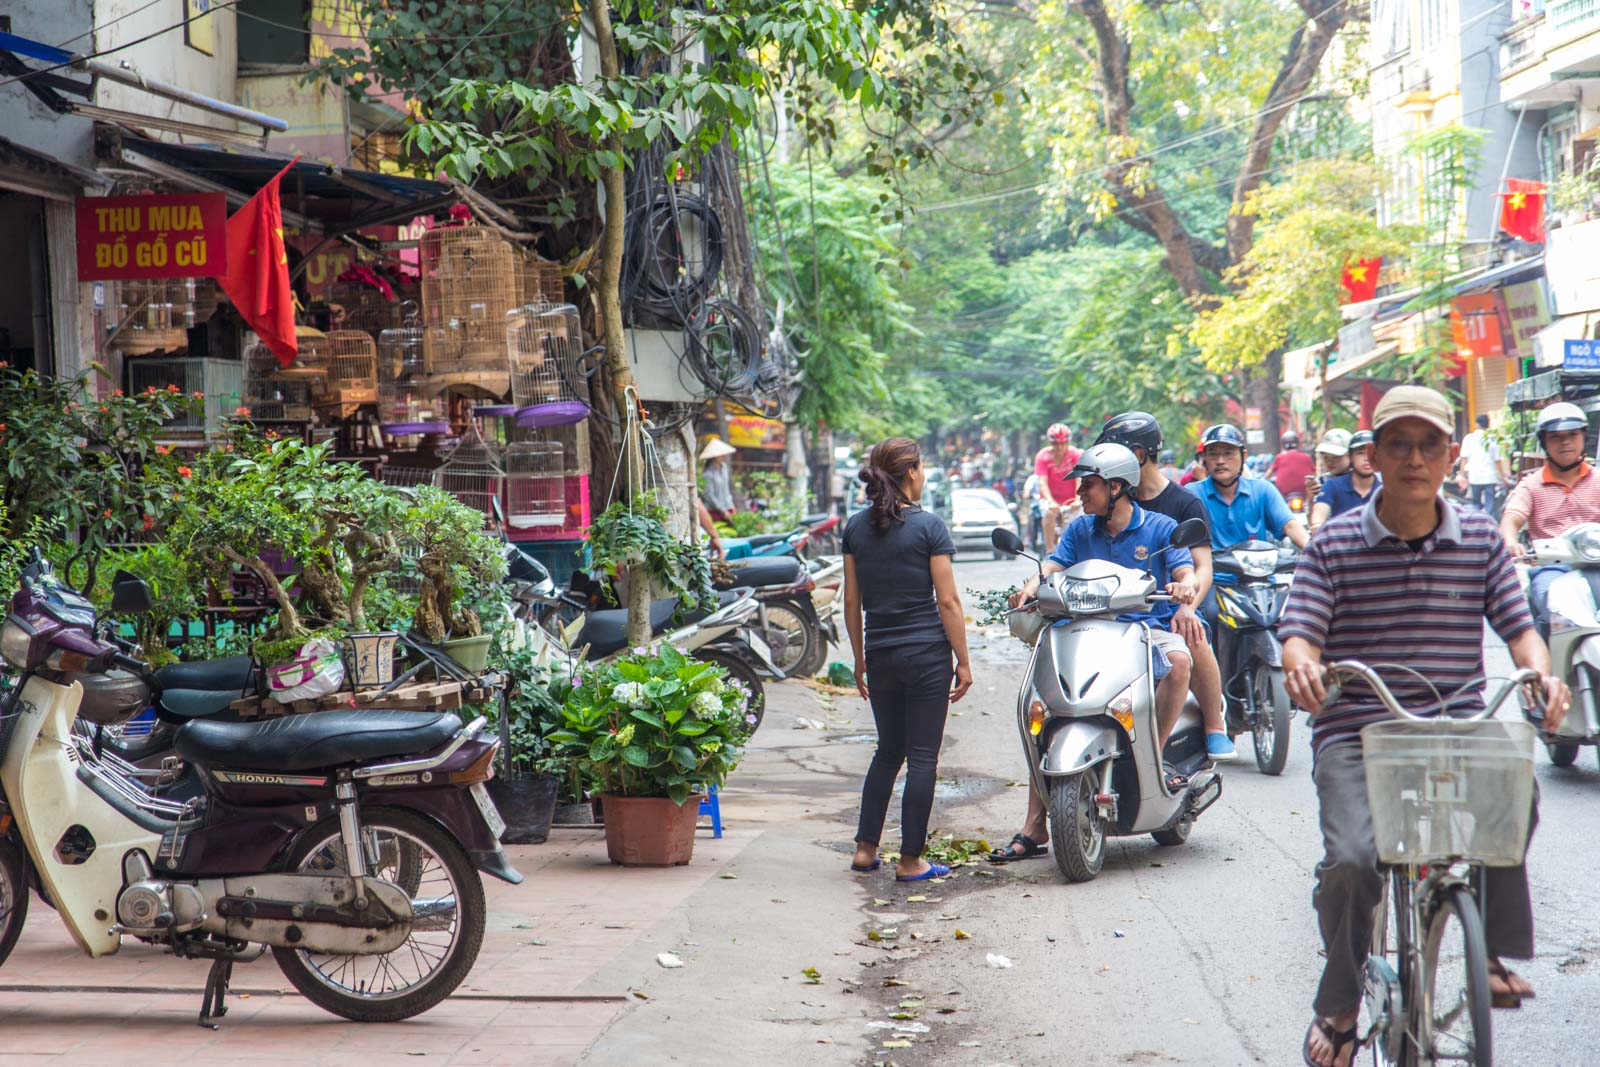 Prettiest Street in Hanoi, Vietnam